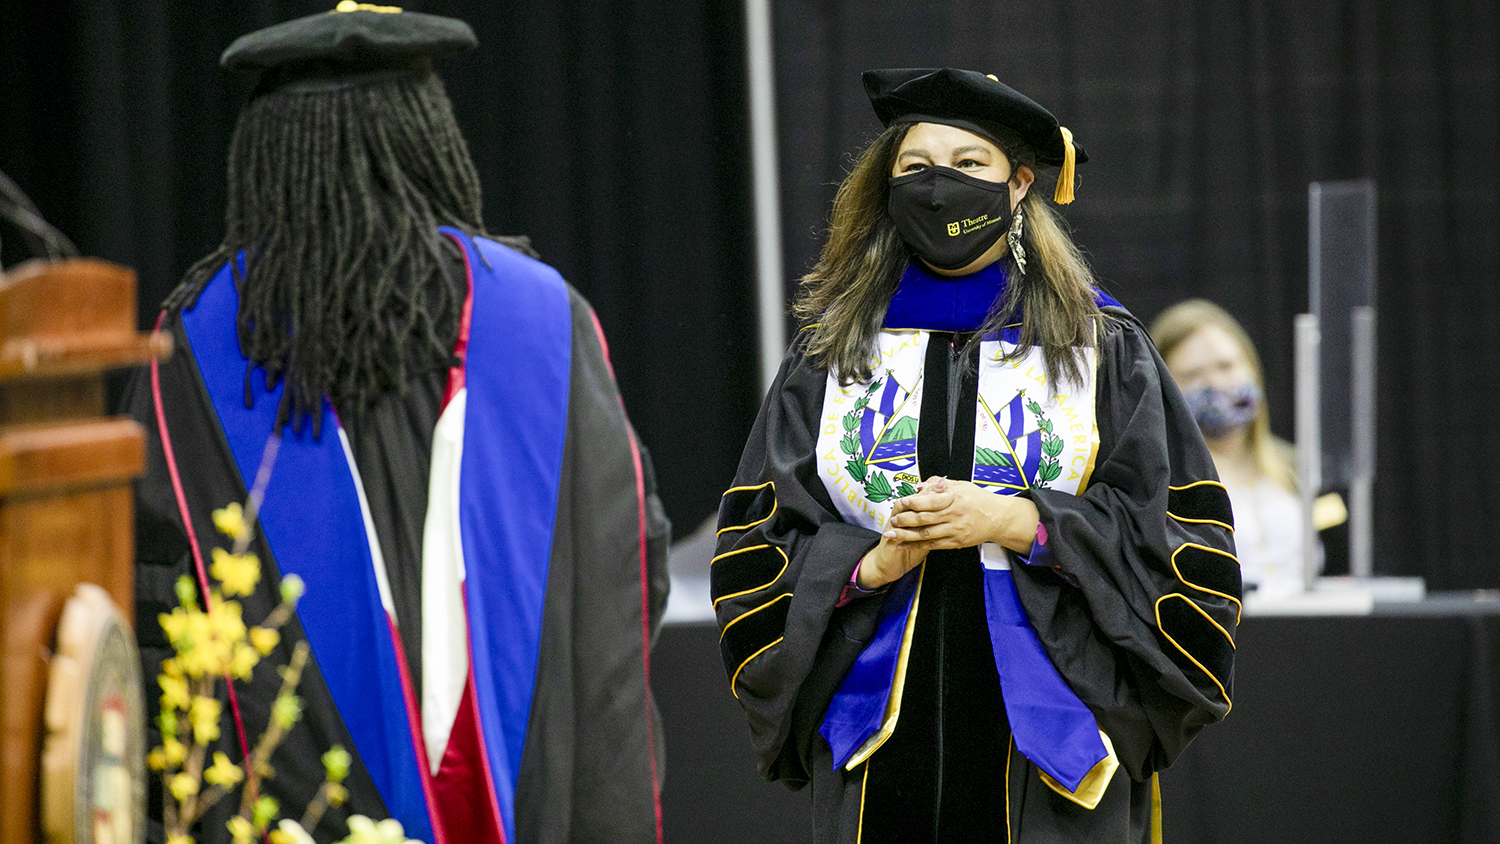 two people in regalia at the ceremony